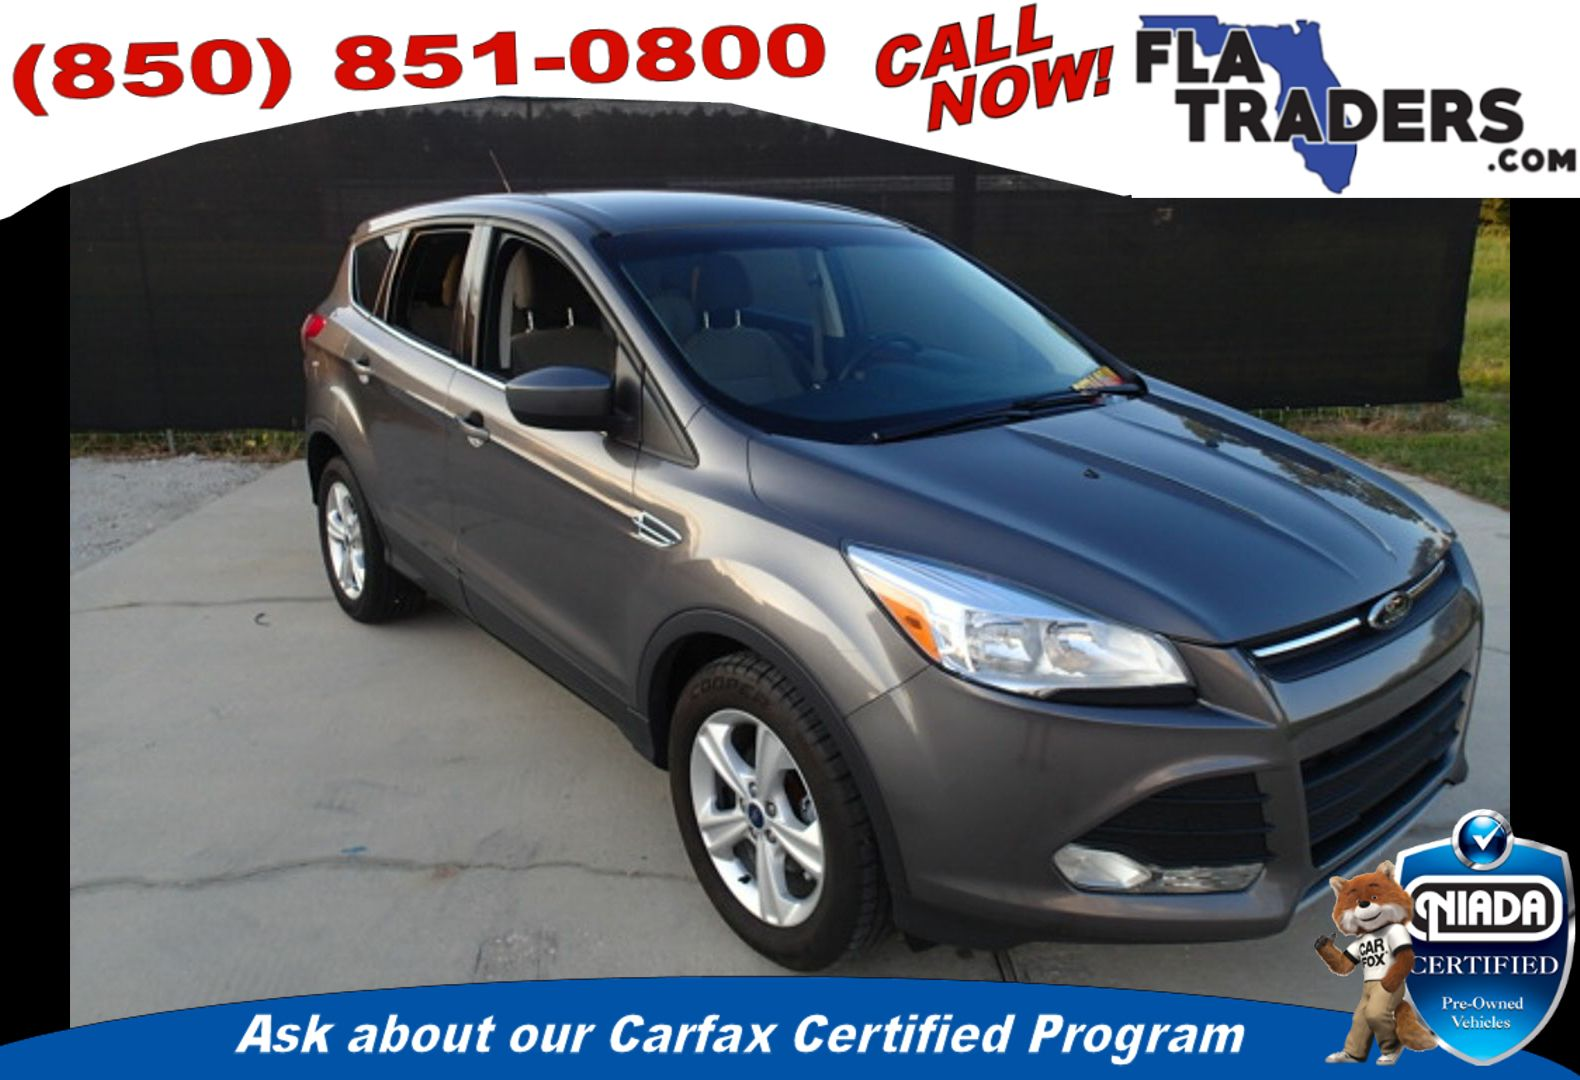 2014 FORD ESCAPE - Florida Traders Used Cars in Panama City FL ...